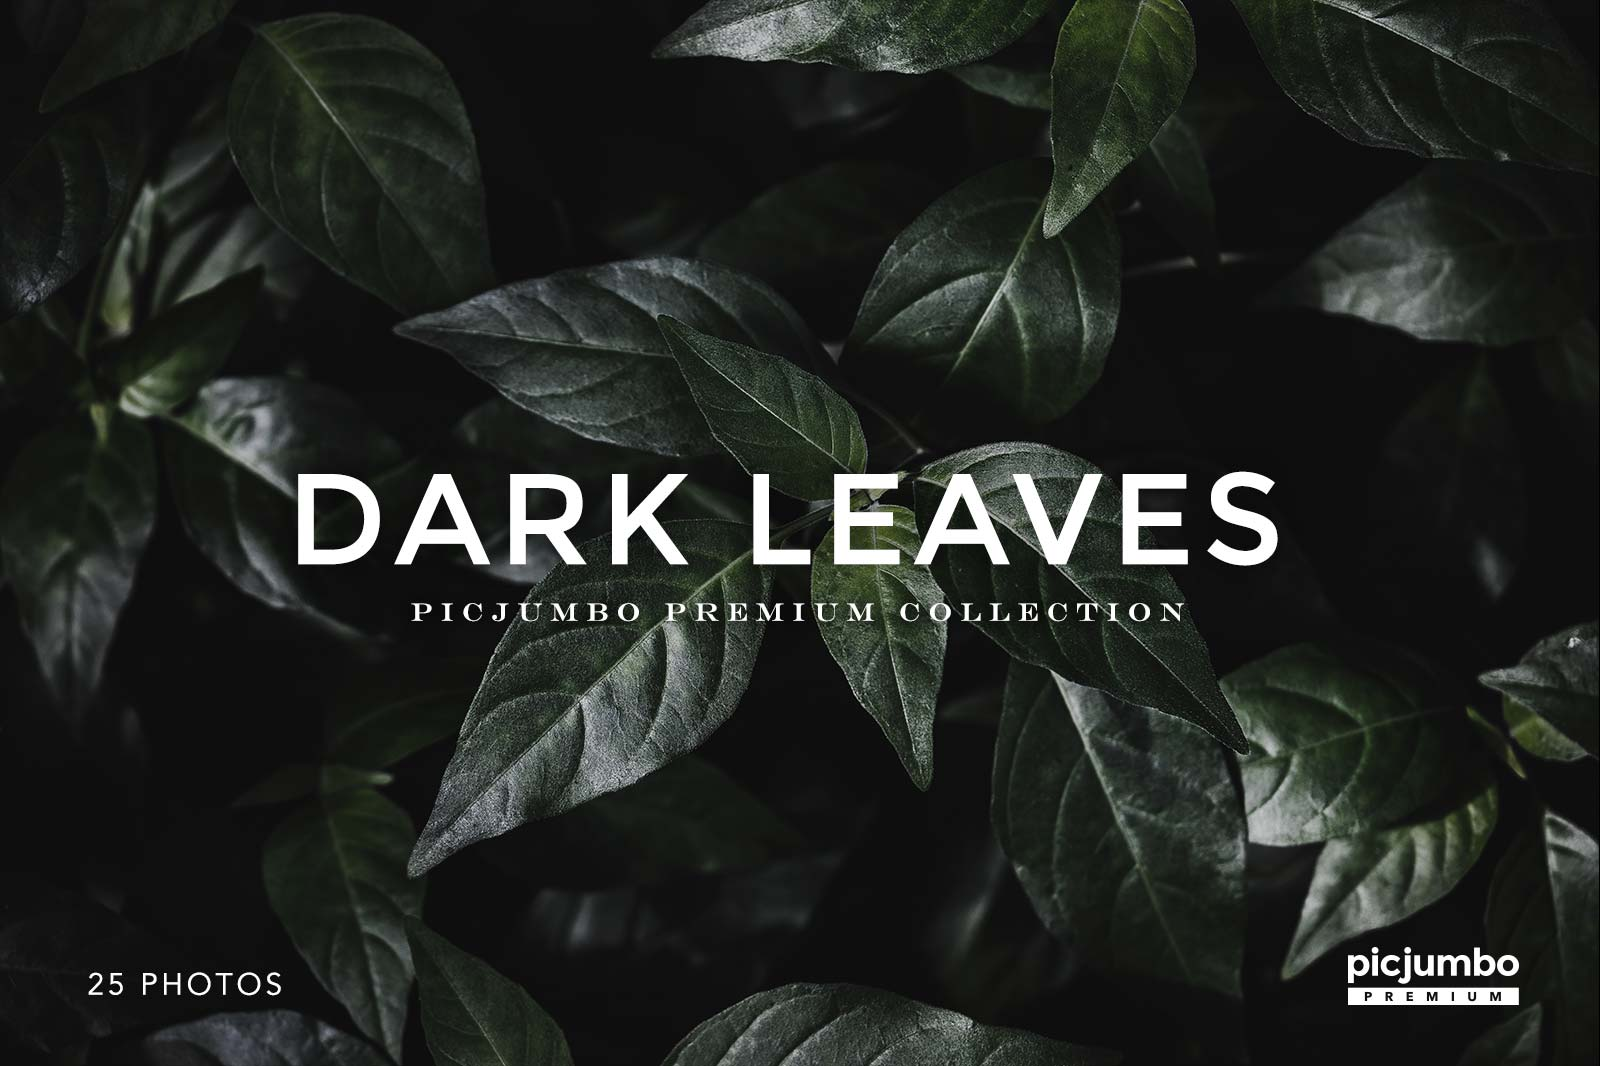 Dark Leaves — Join PREMIUM and get instant access to all photos from this collection!